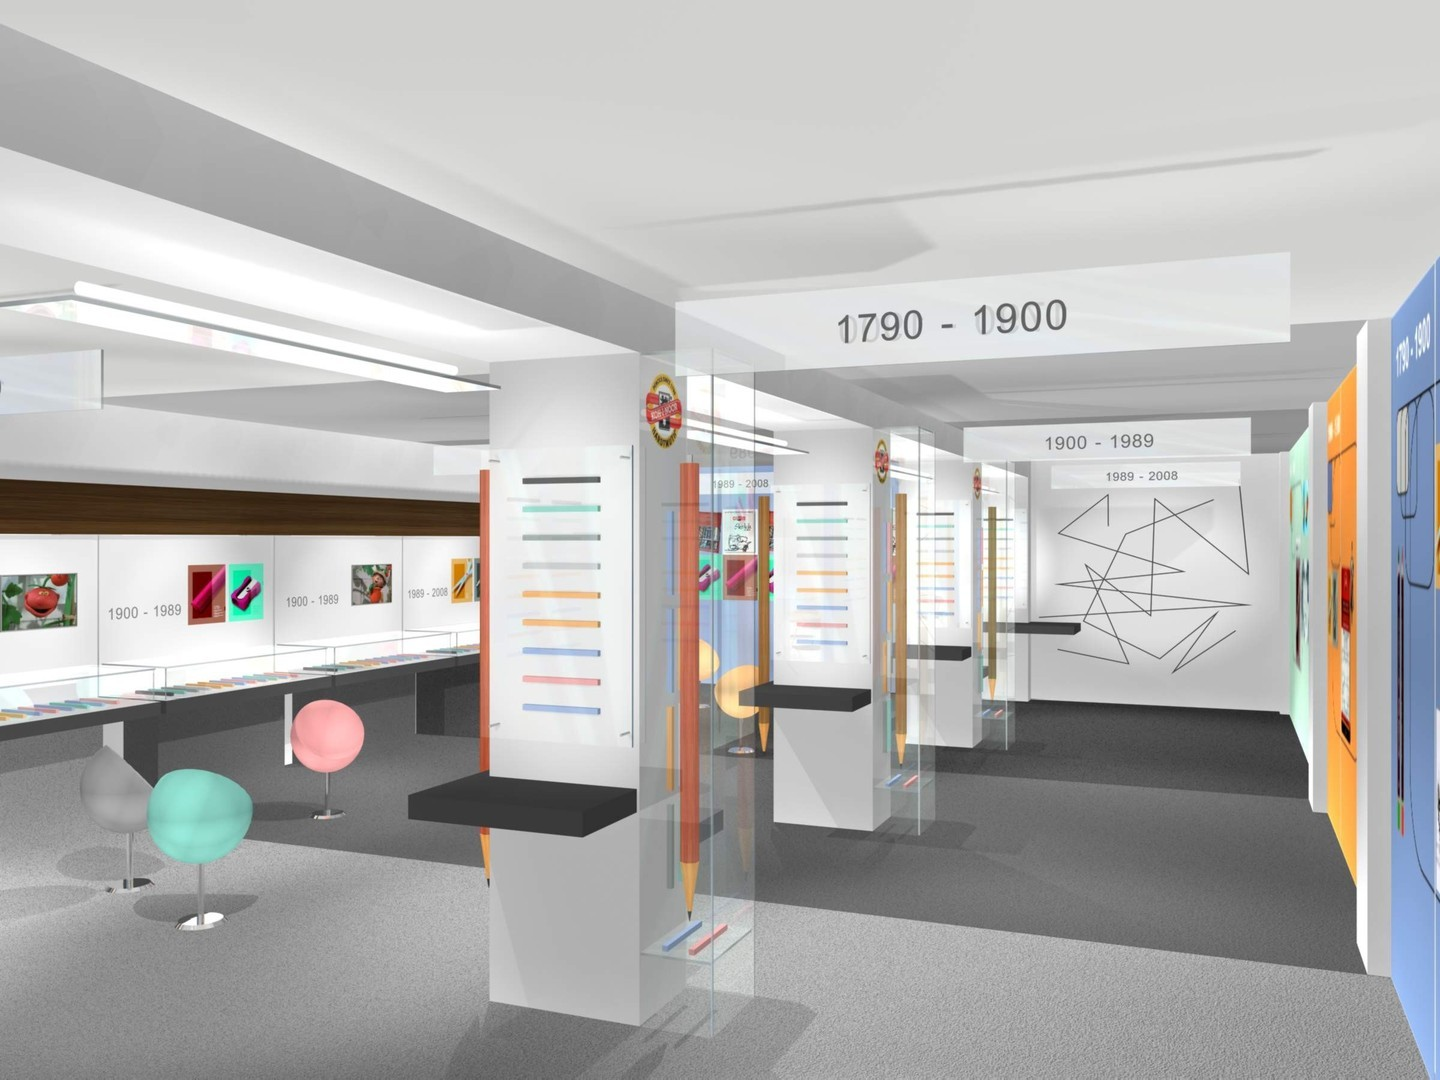 exhibition space design for the company koh i noor